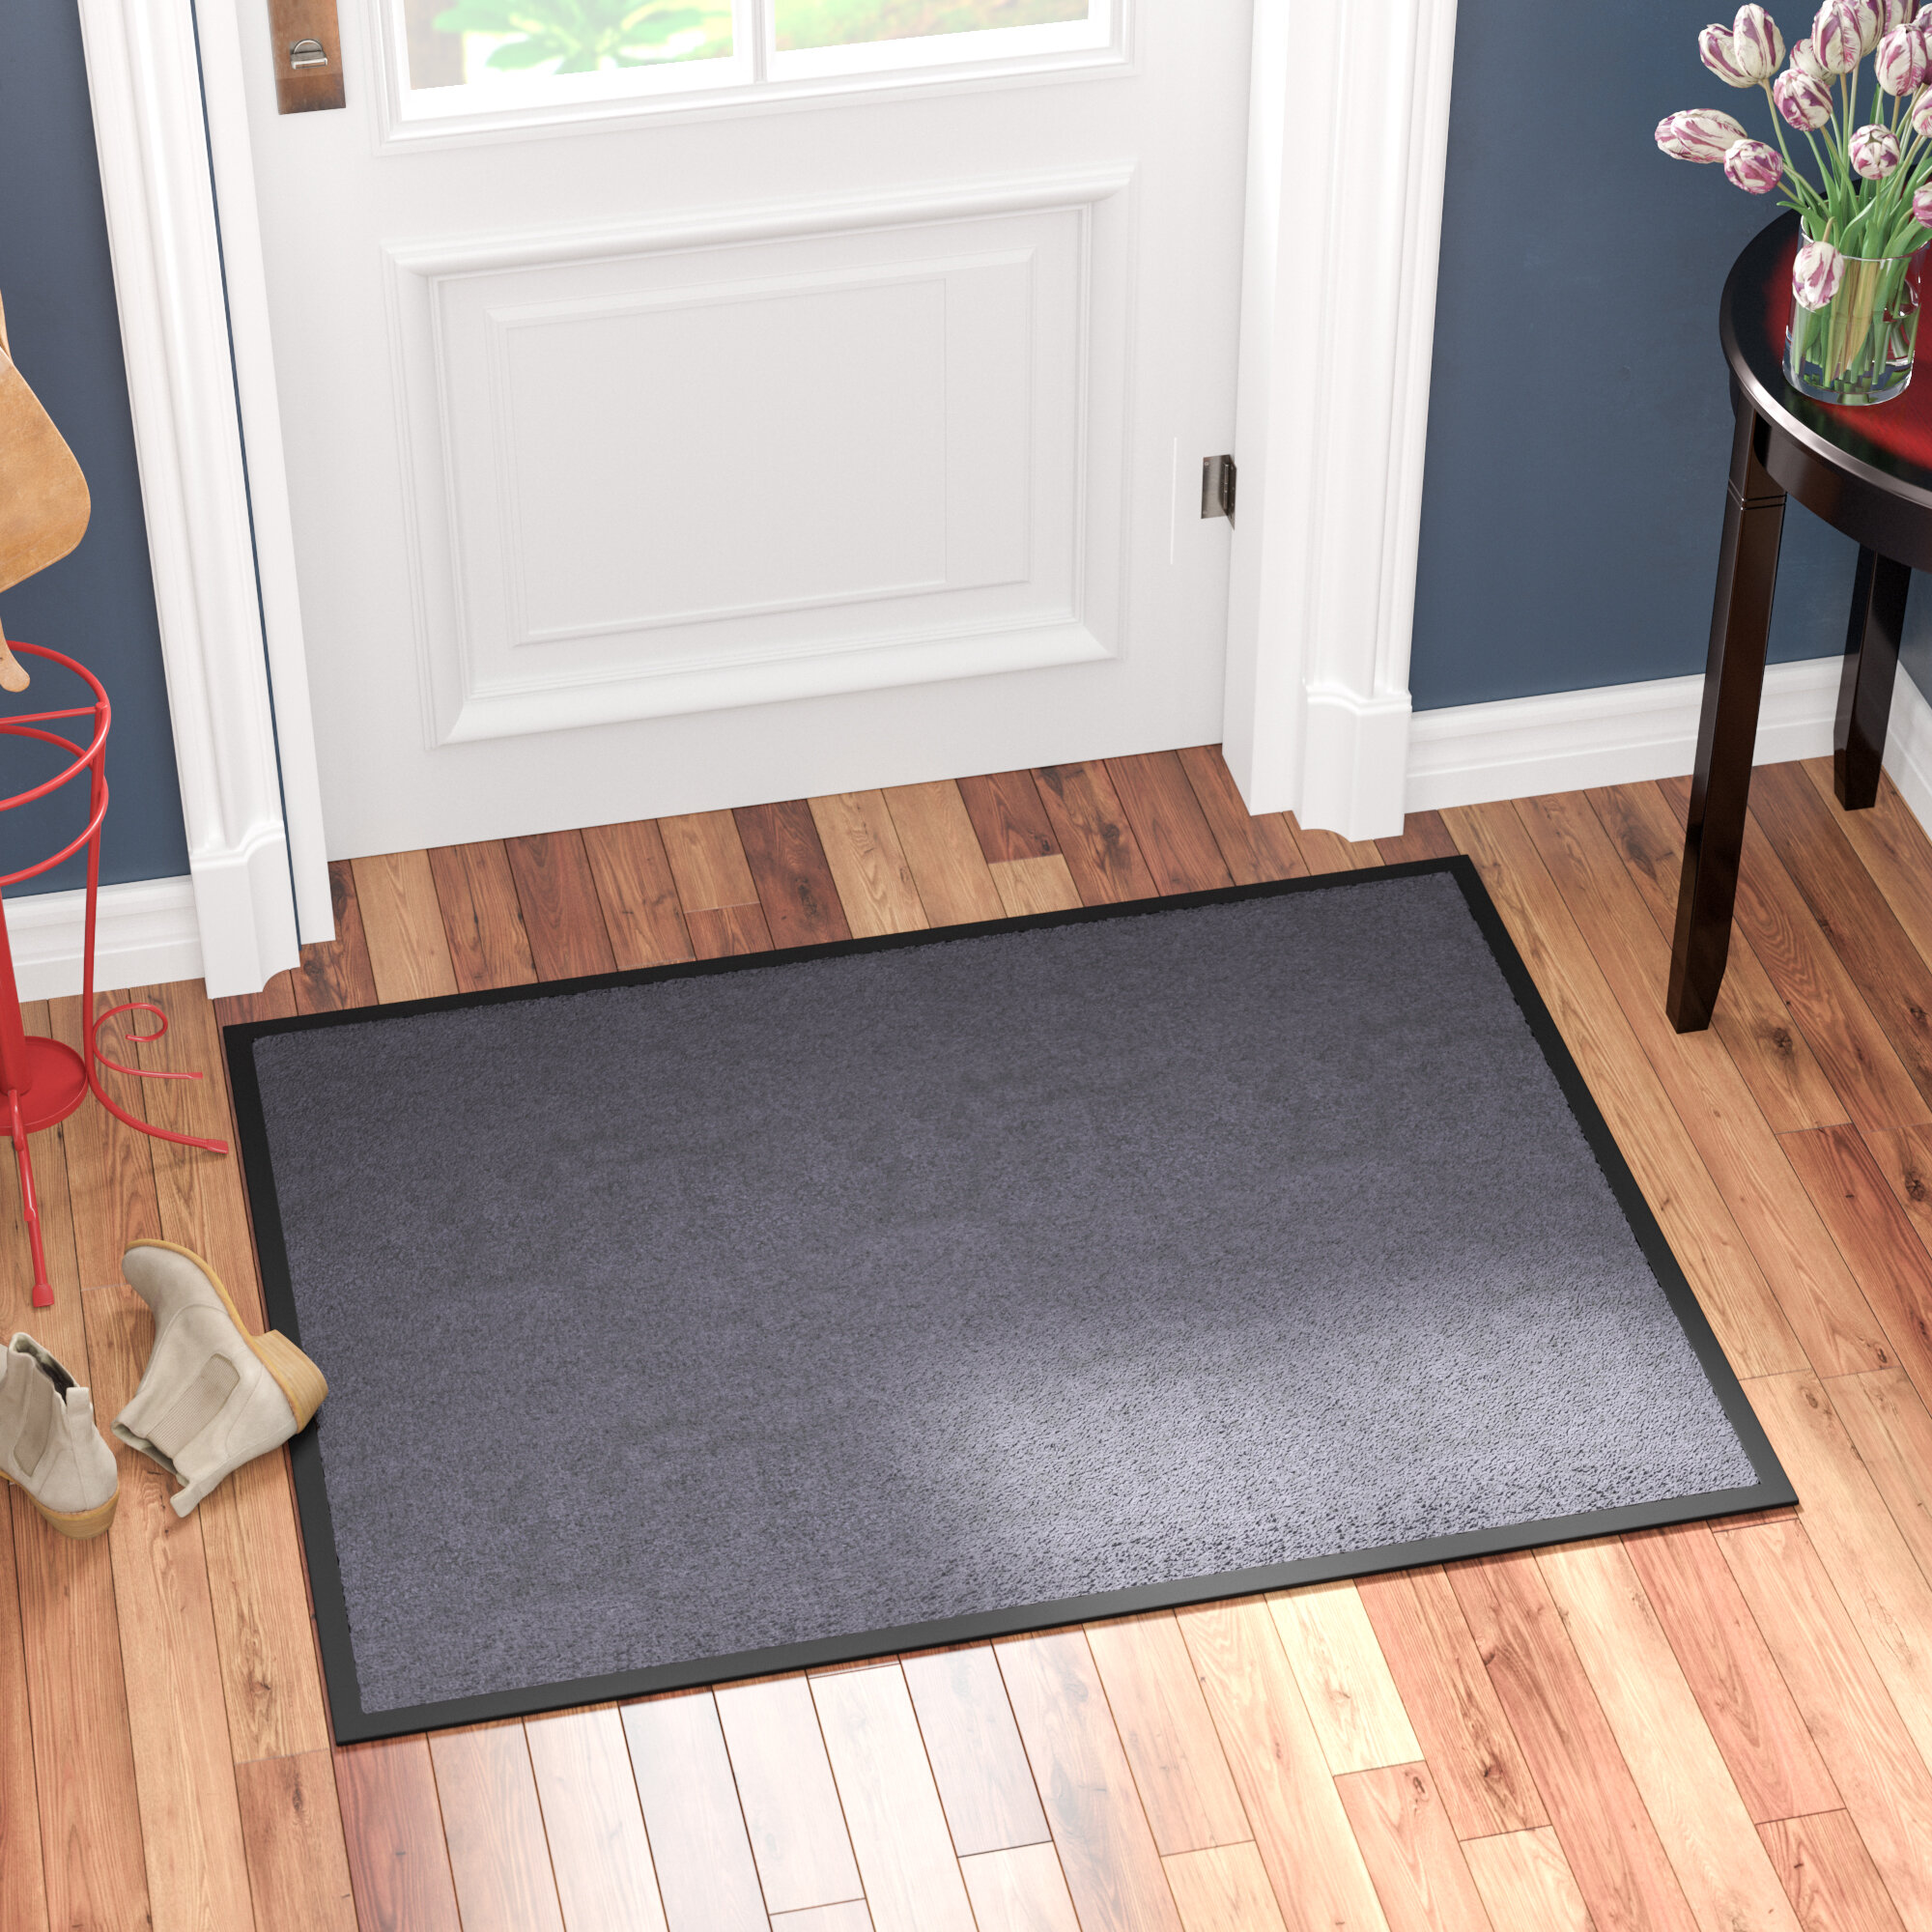 Gentil Red Barrel Studio Hastings Rectangular Indoor Plush Entrance Door Mat U0026  Reviews | Wayfair